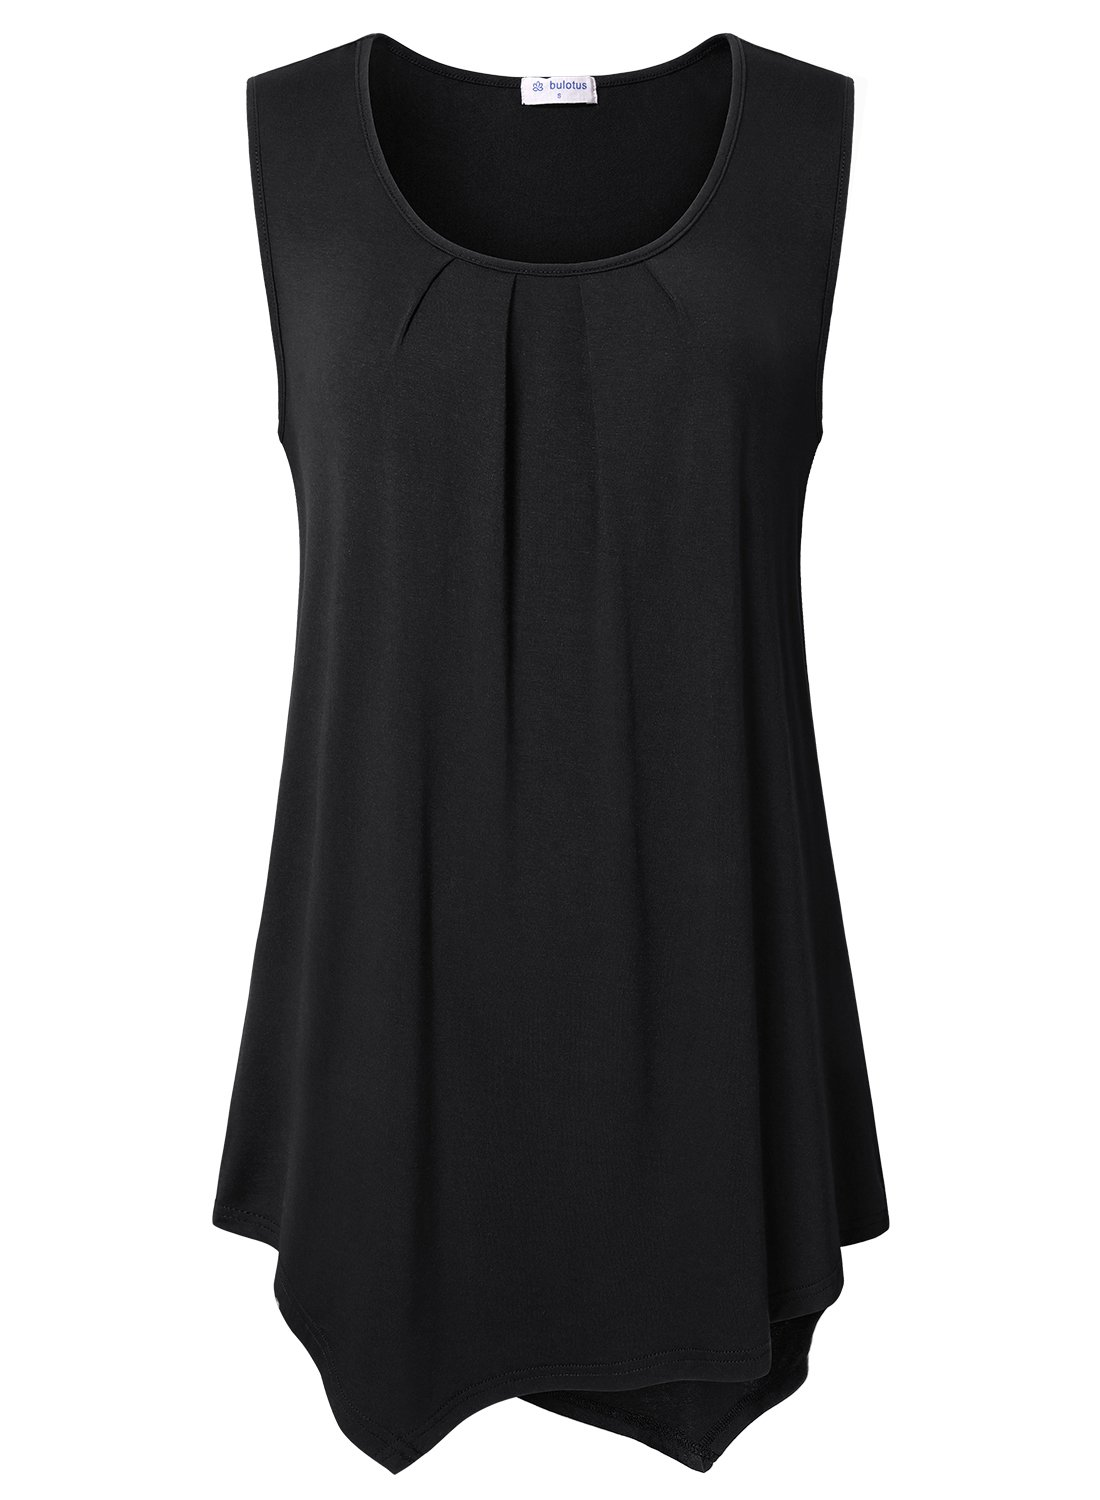 Bulotus Women's Sleeveless Notch V-Neck Summer Casual Tank Top Shirt